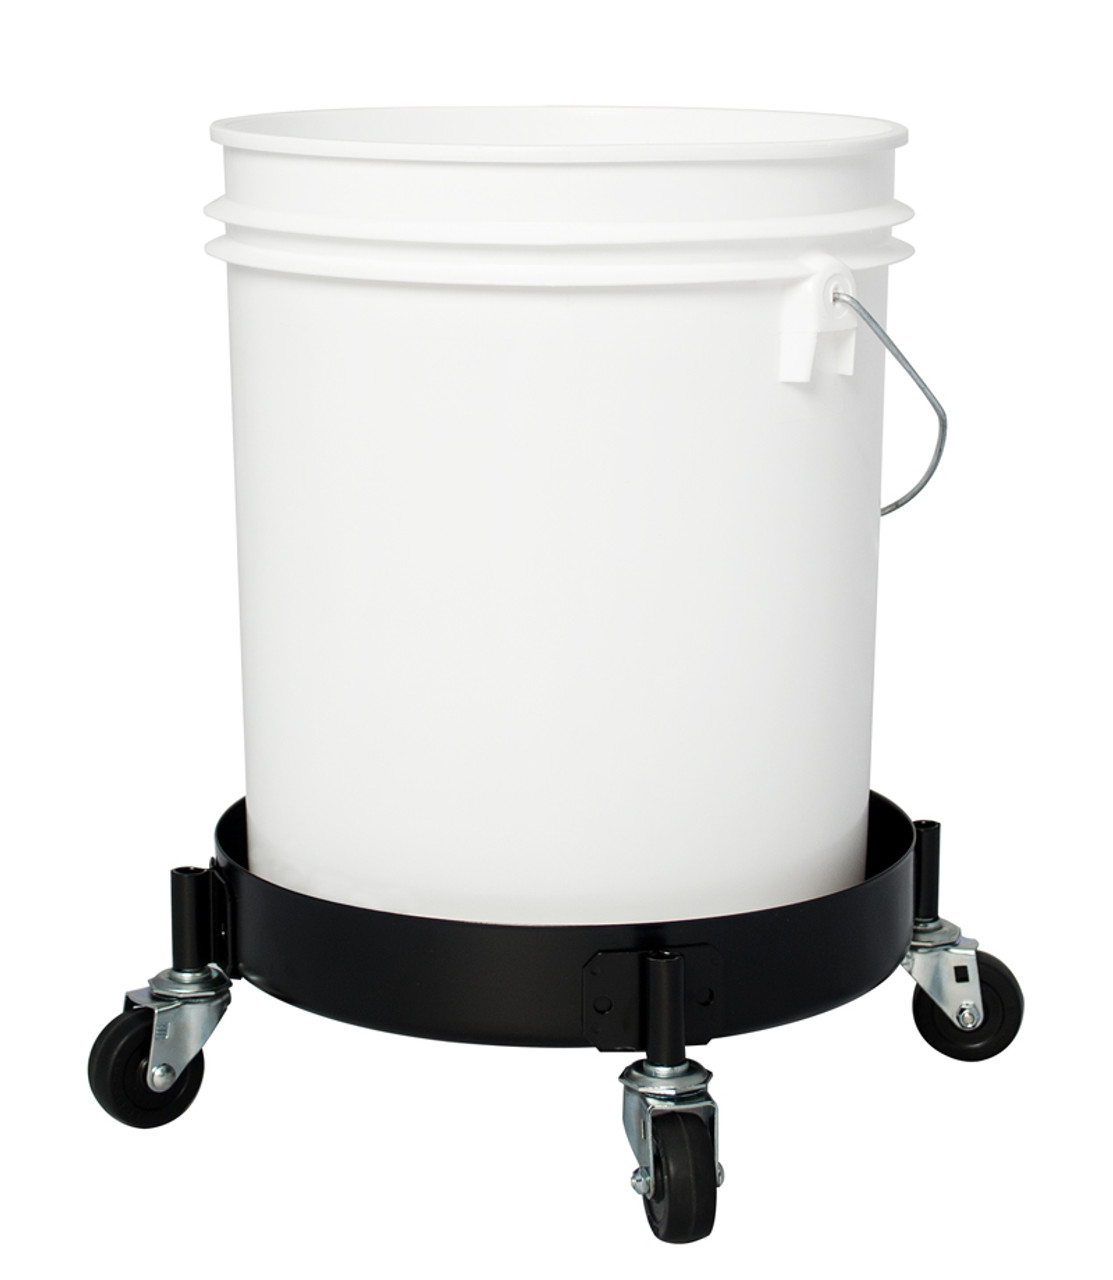 In Use with a 5 Gallon Plastic Bucket (BUCKET NOT INCLUDED)